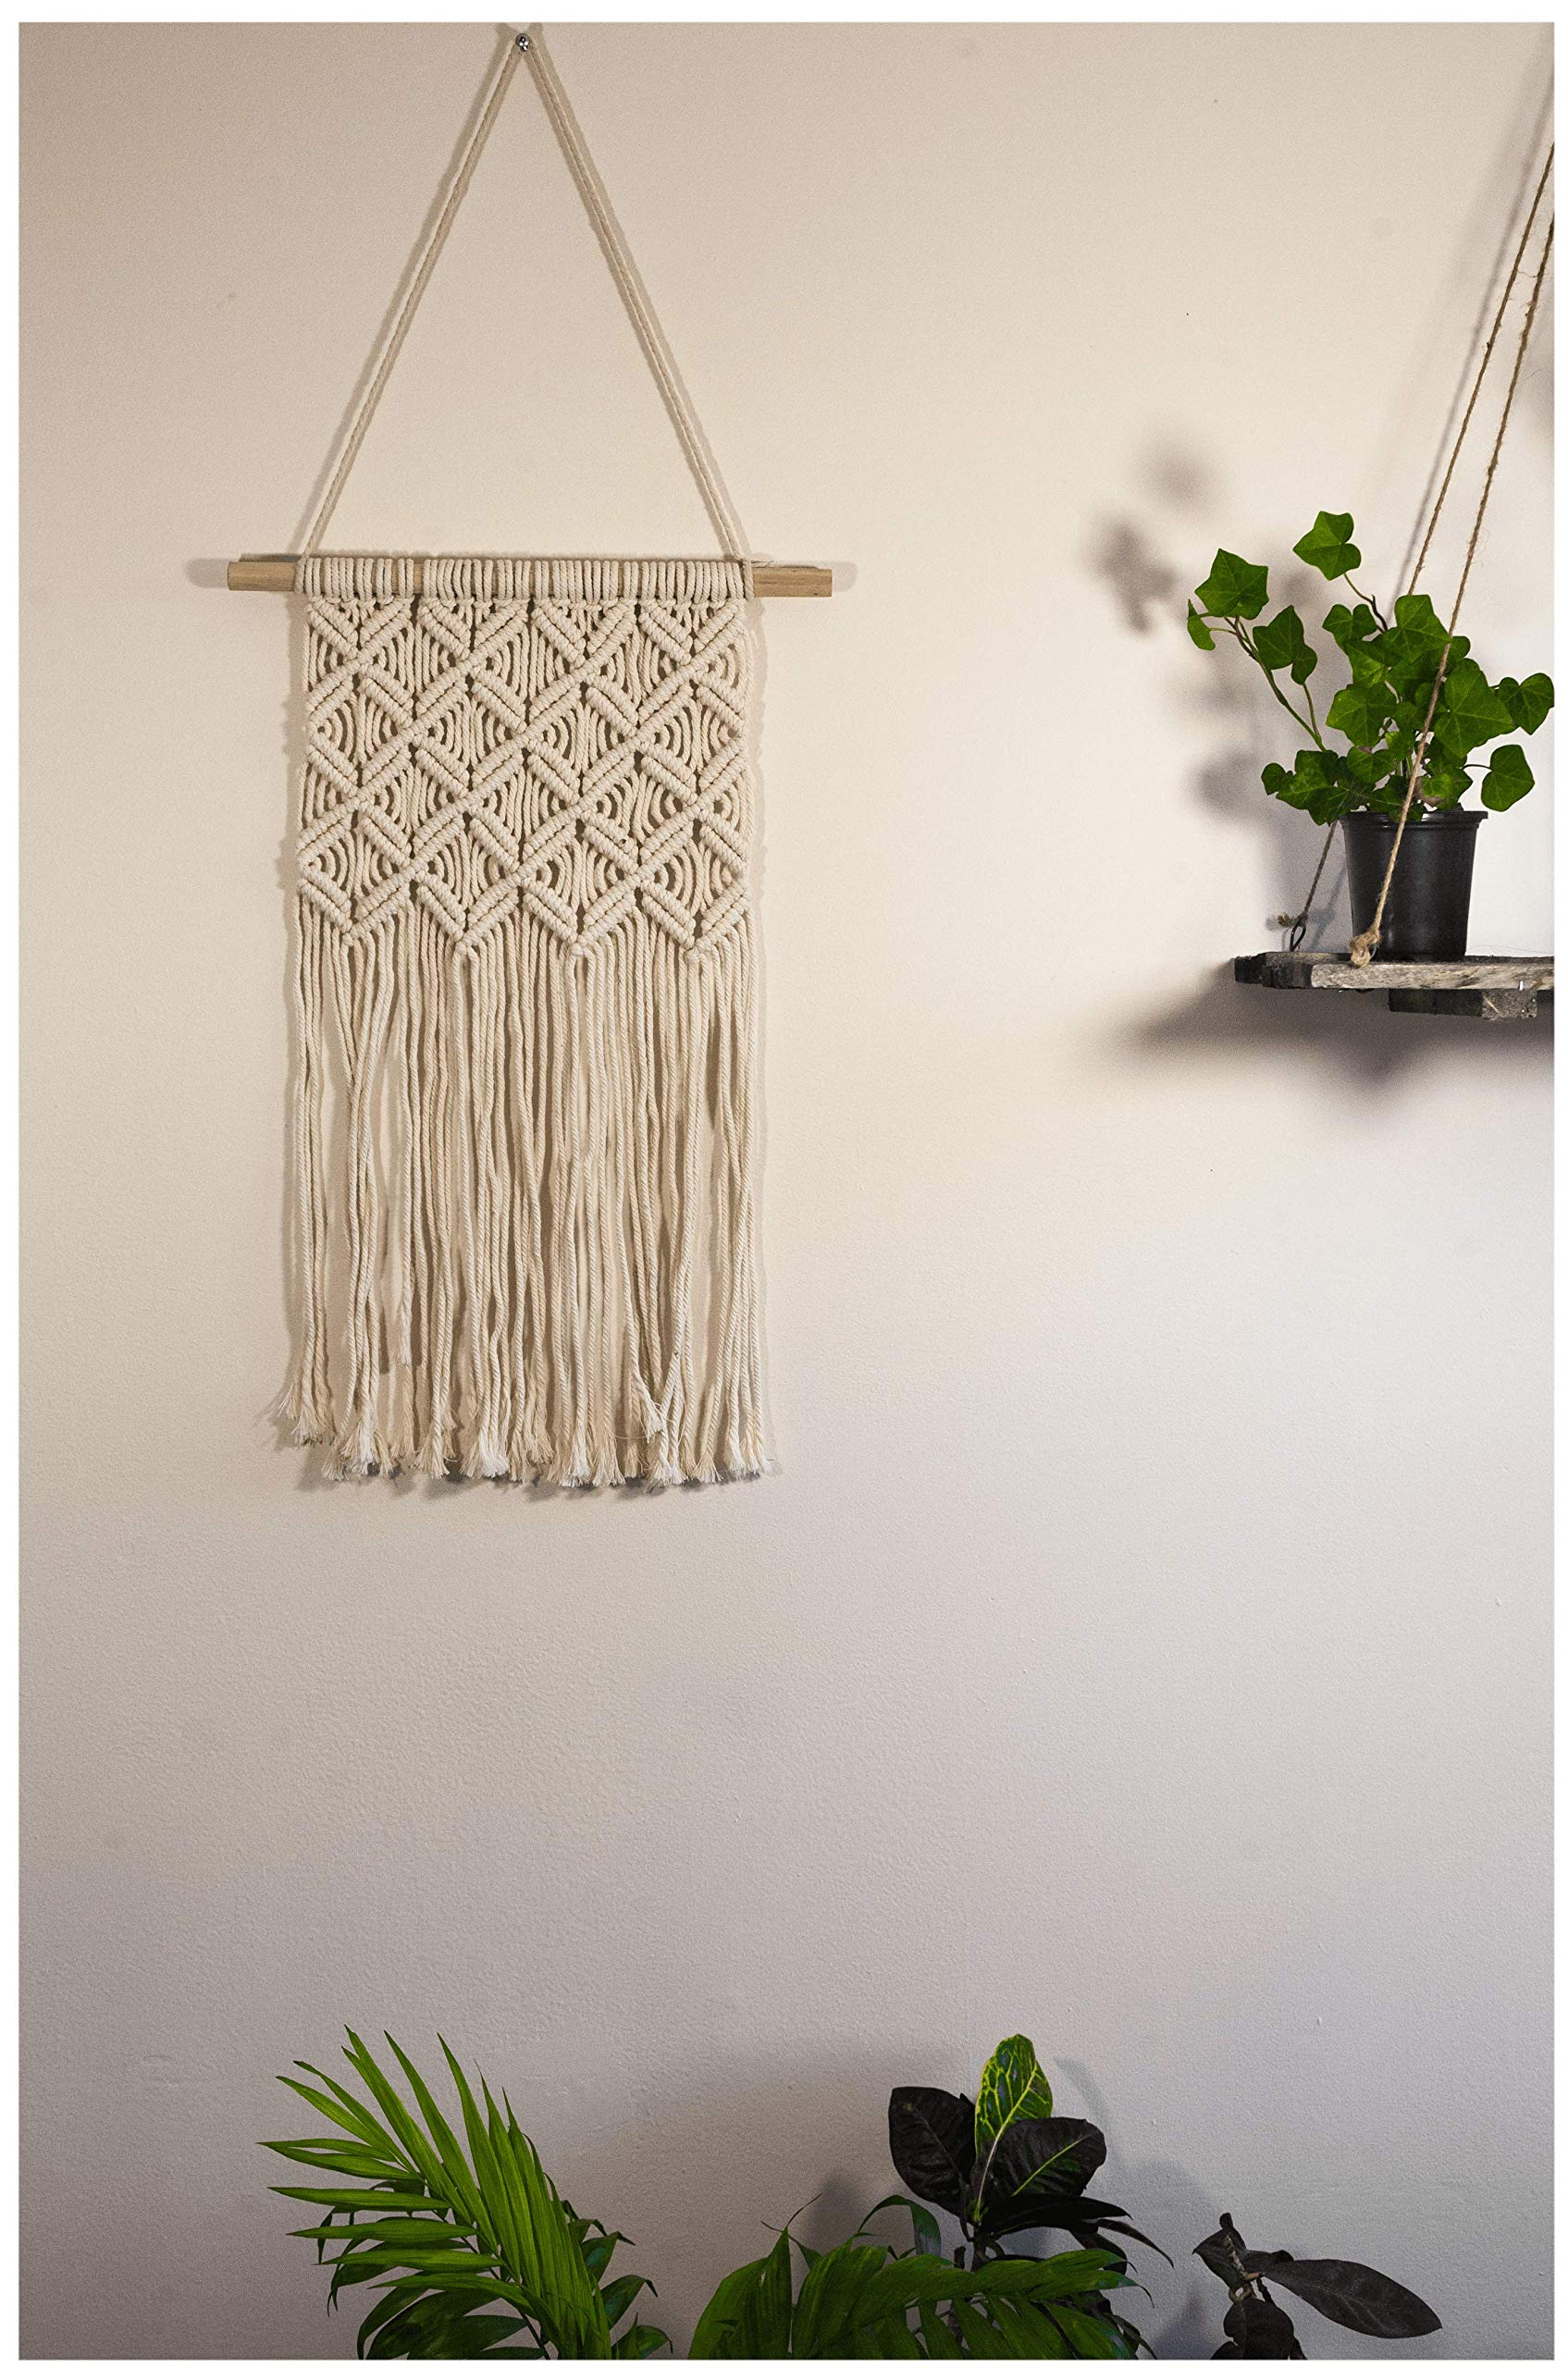 Macrame Wall Hanging, Macrame Curtain, Wall Tapestry, Rustic Home Decor, Bohemian Tapestry, (12Wx26L)